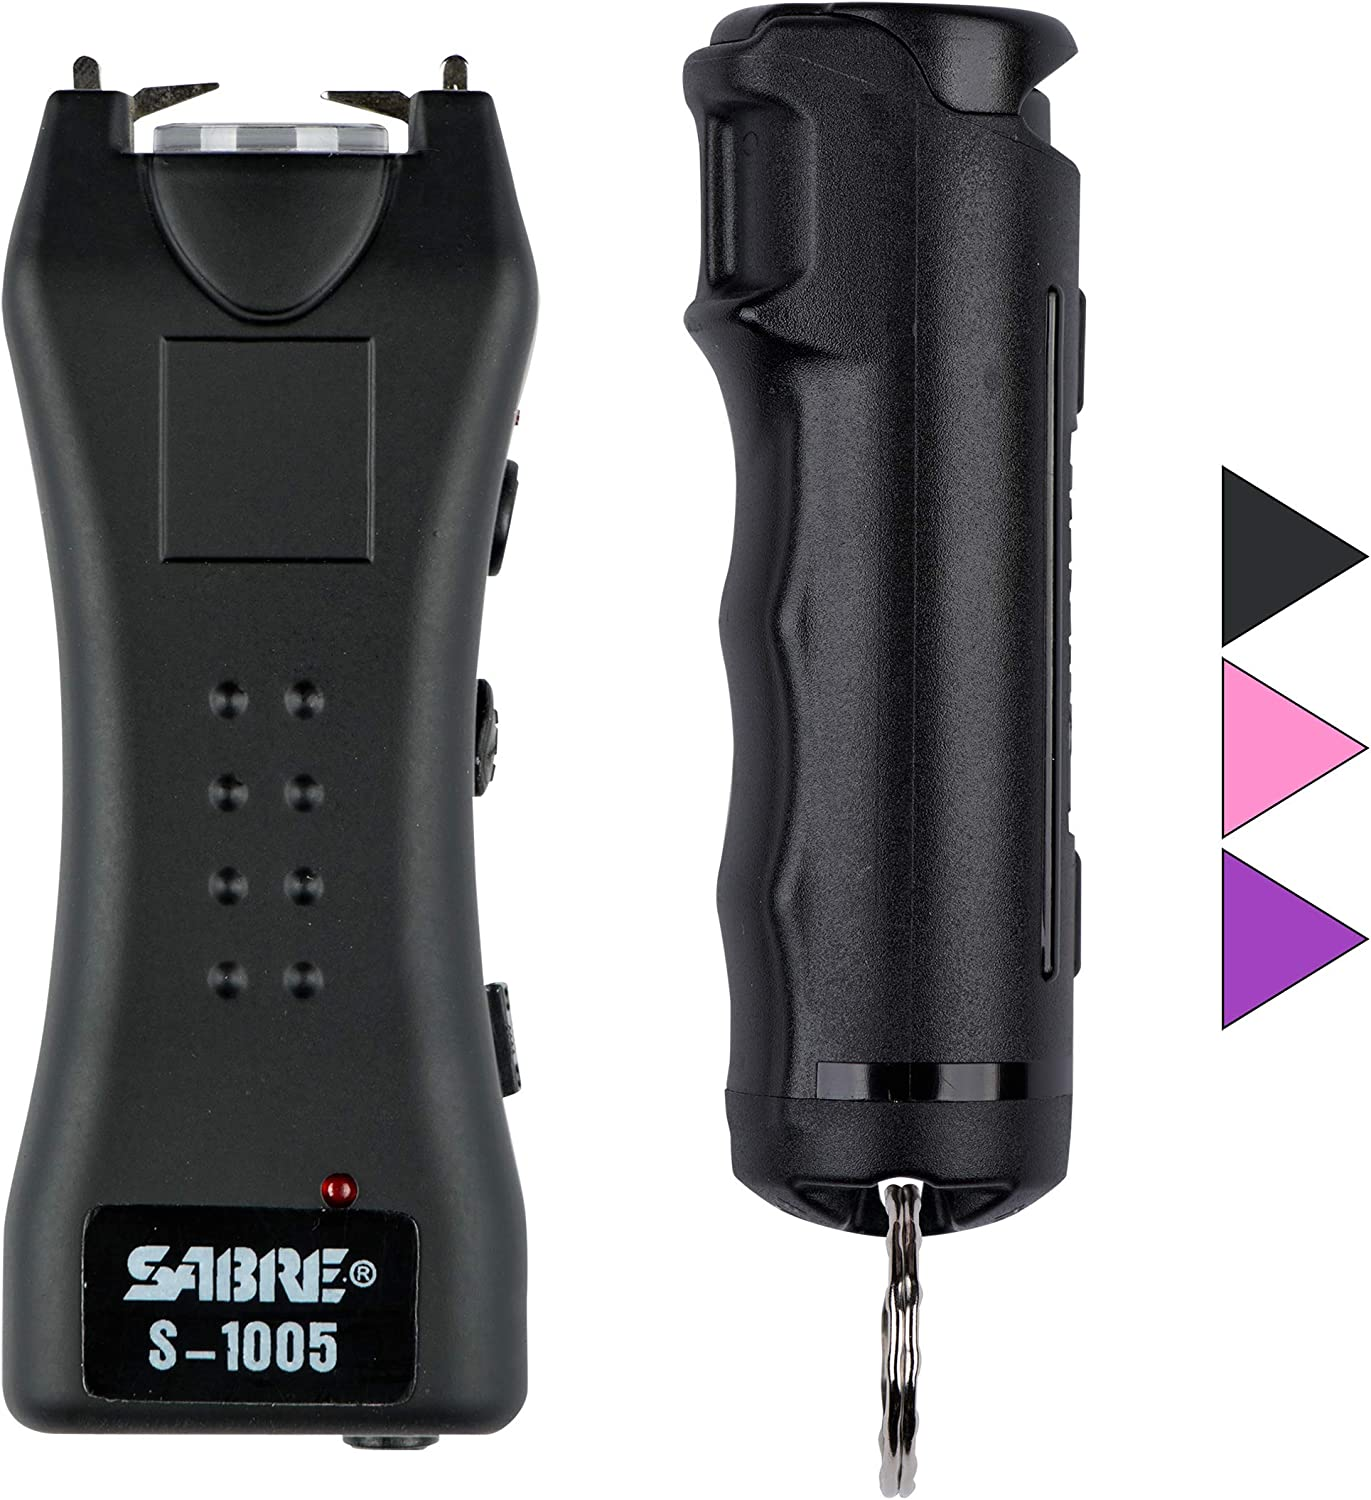 SABRE RED Pepper Spray & Stun Gun Flashlight Self-Defense Kit — Police Strength Flip Top Pepper Spray is Faster to Use Under Stress, Compact 1.6 µC Stun Gun w/Holster & Rechargeable Built-in Battery